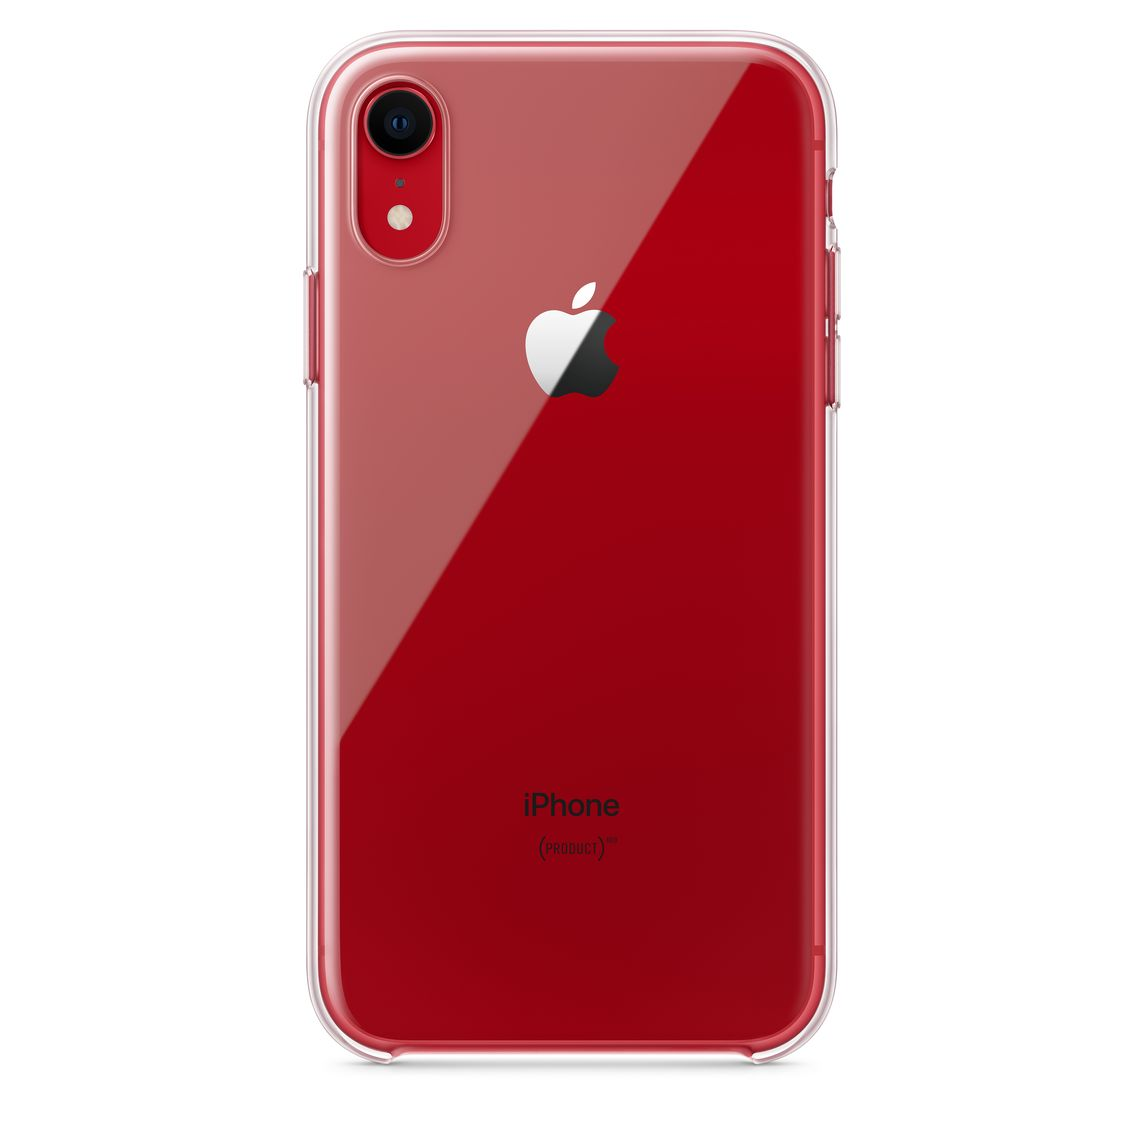 new products 1c4be 73947 iPhone XR Clear Case